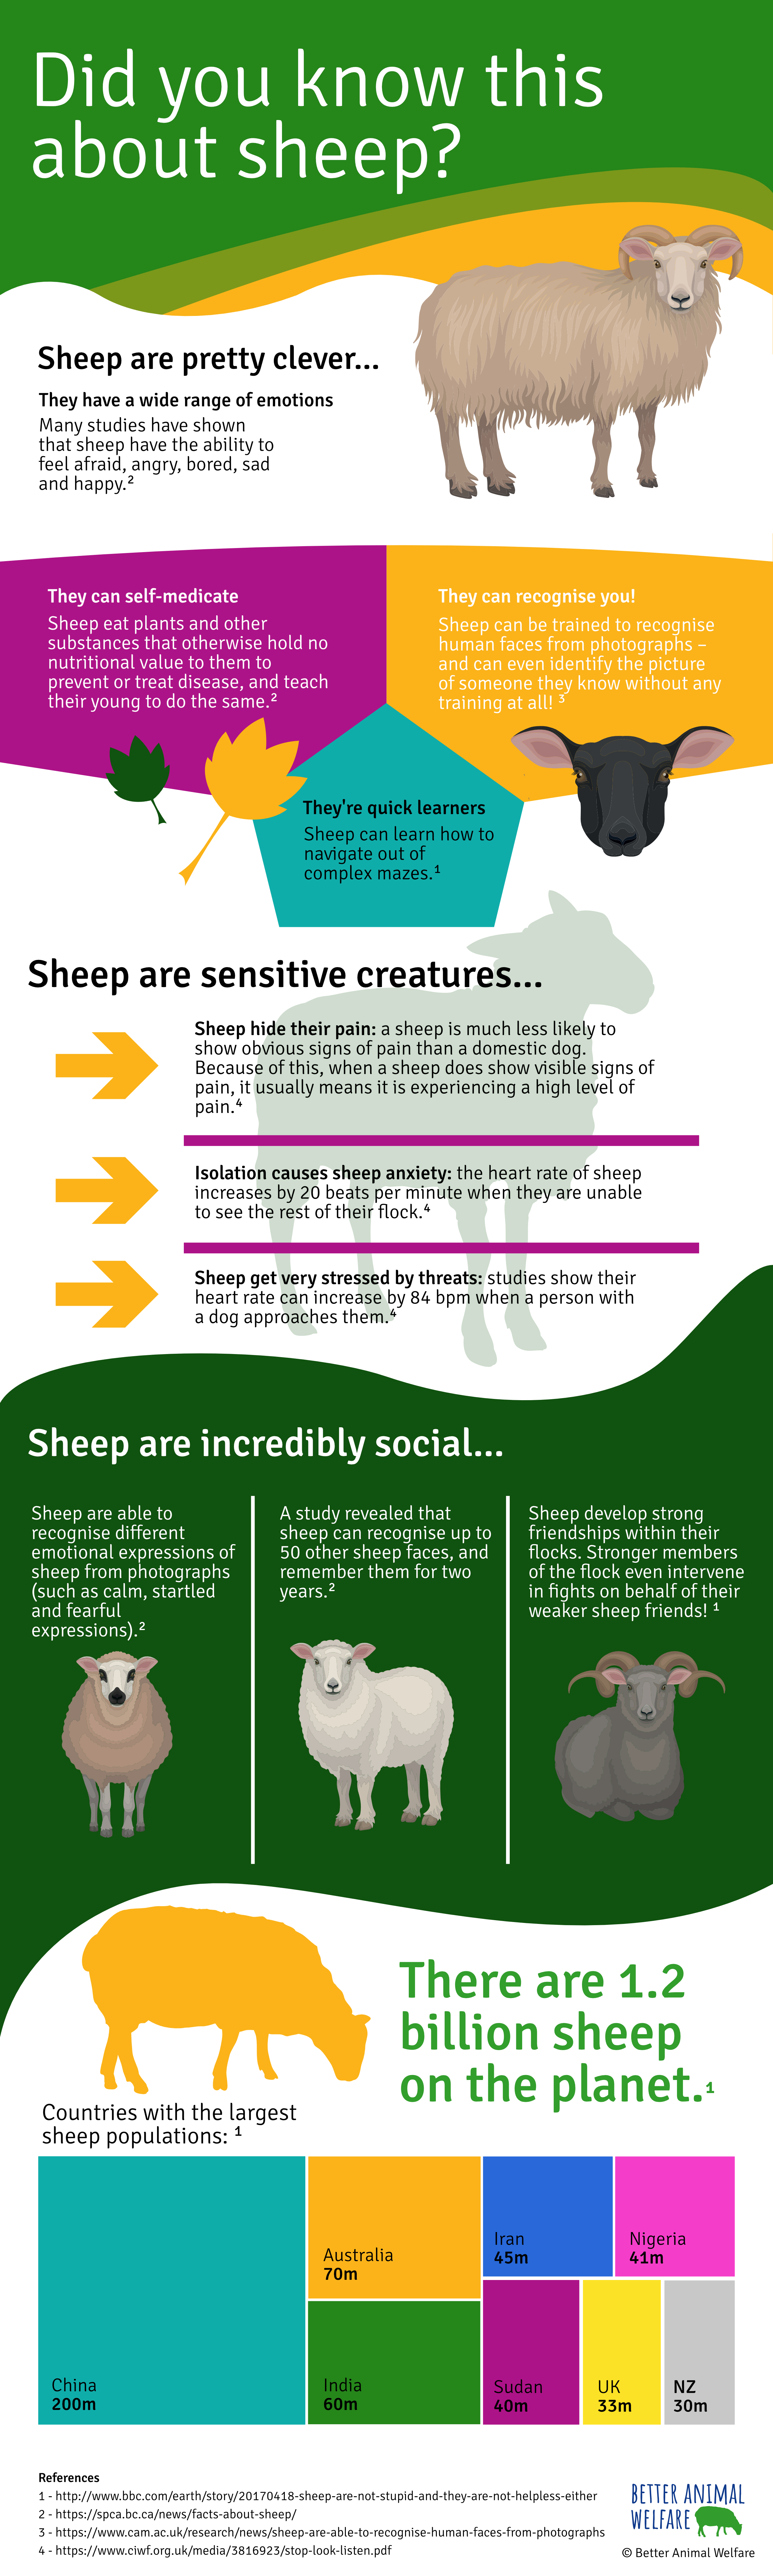 Sheep Facts Infographic - Better Animal Welfare